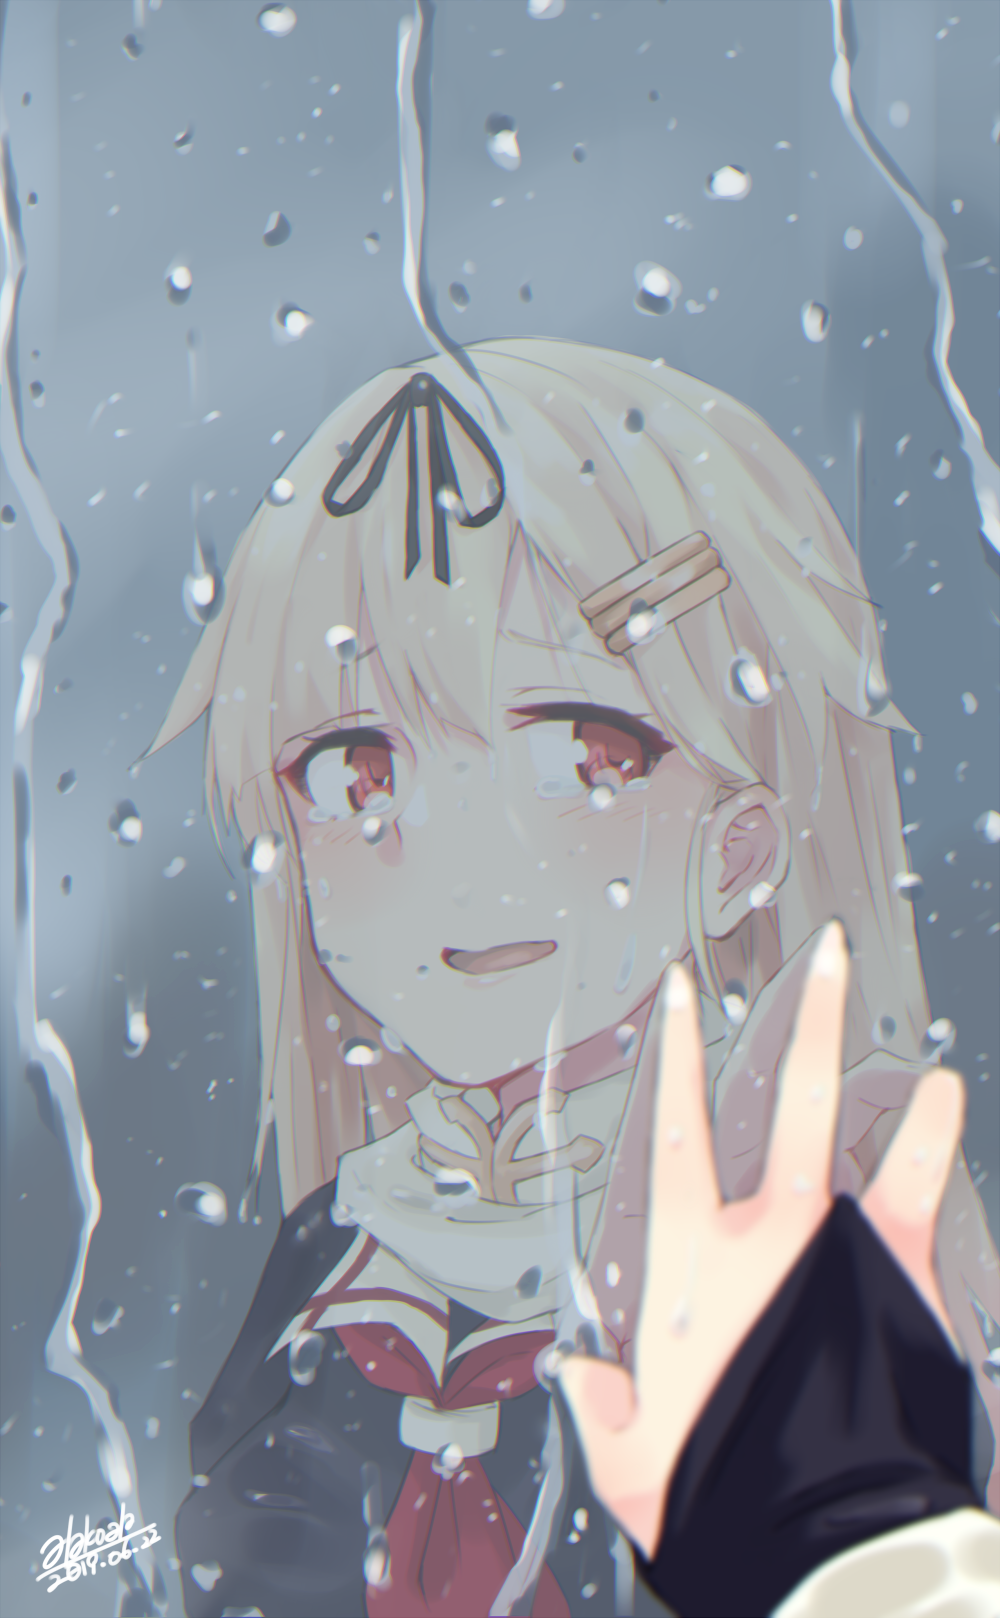 1girl against_glass alakoala_shoushou black_gloves black_ribbon black_serafuku blonde_hair commentary_request dated fingerless_gloves gloves hair_flaps hair_ornament hair_ribbon hairclip highres kantai_collection long_hair looking_at_viewer neckerchief rain red_eyes red_neckwear reflection remodel_(kantai_collection) ribbon scarf school_uniform serafuku signature solo tearing_up water_drop white_scarf yuudachi_(kantai_collection)